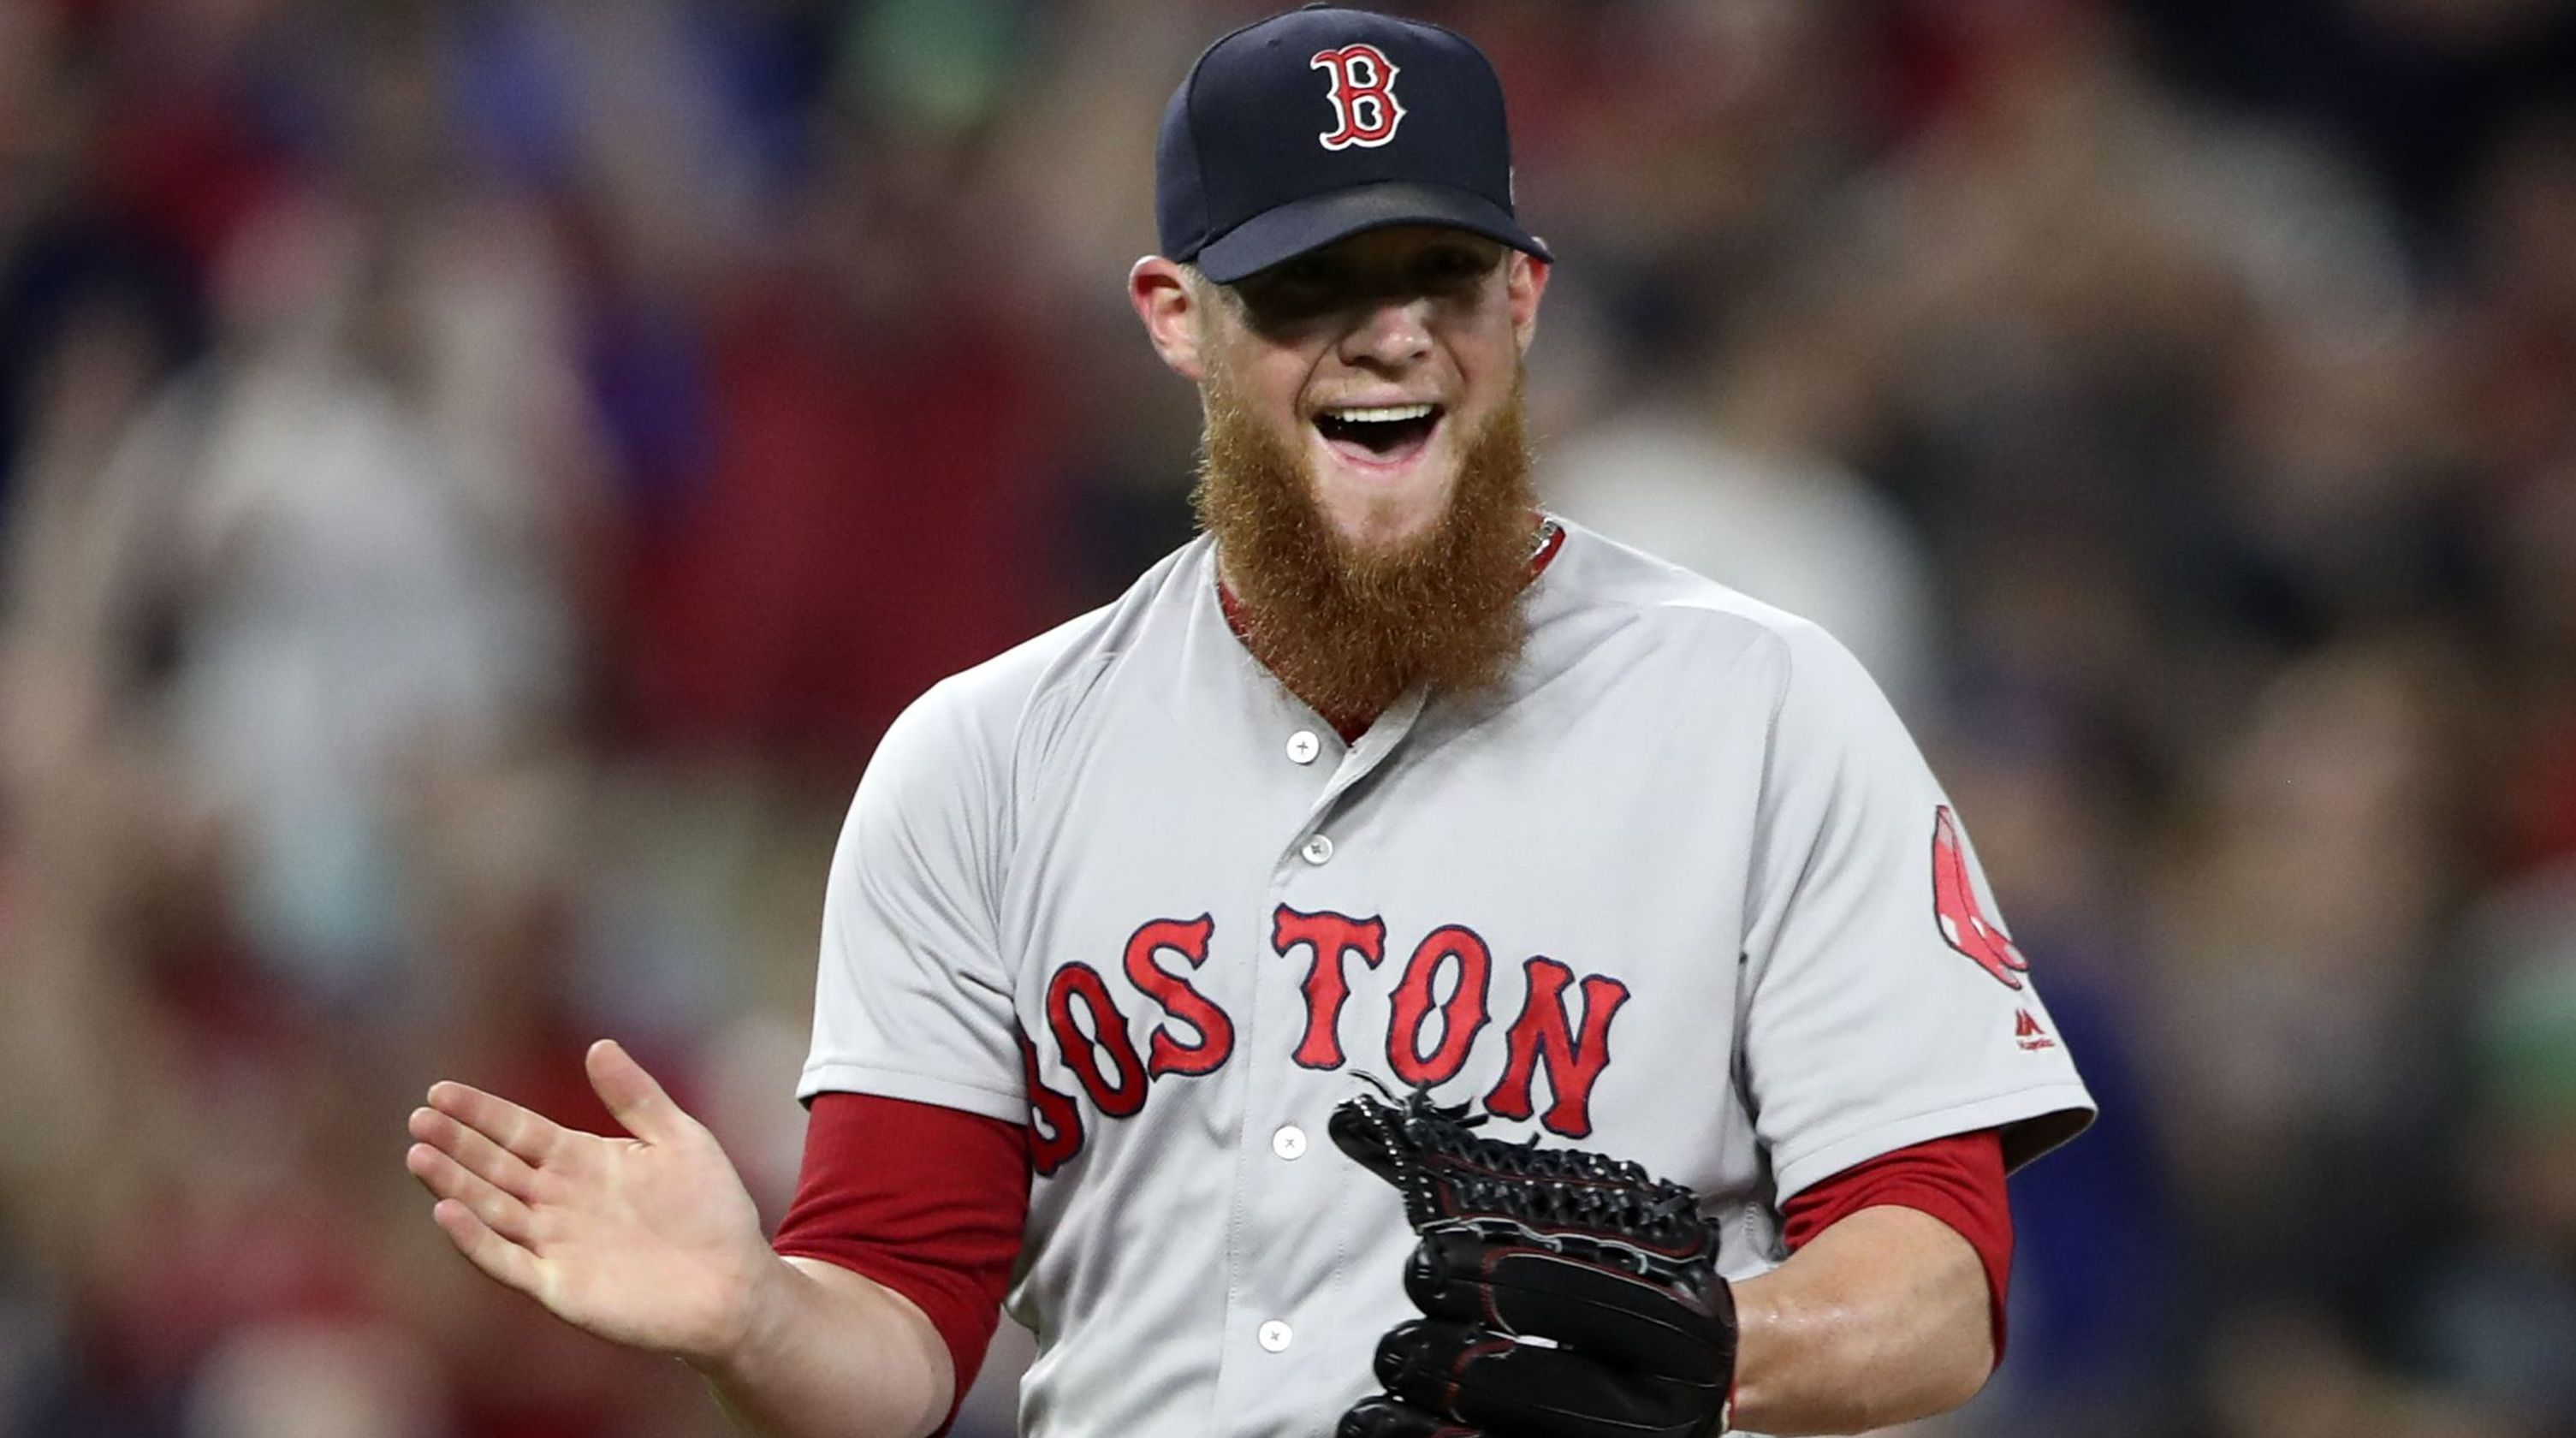 A Case For Craig Kimbrel: Why The Indians Should Add Him